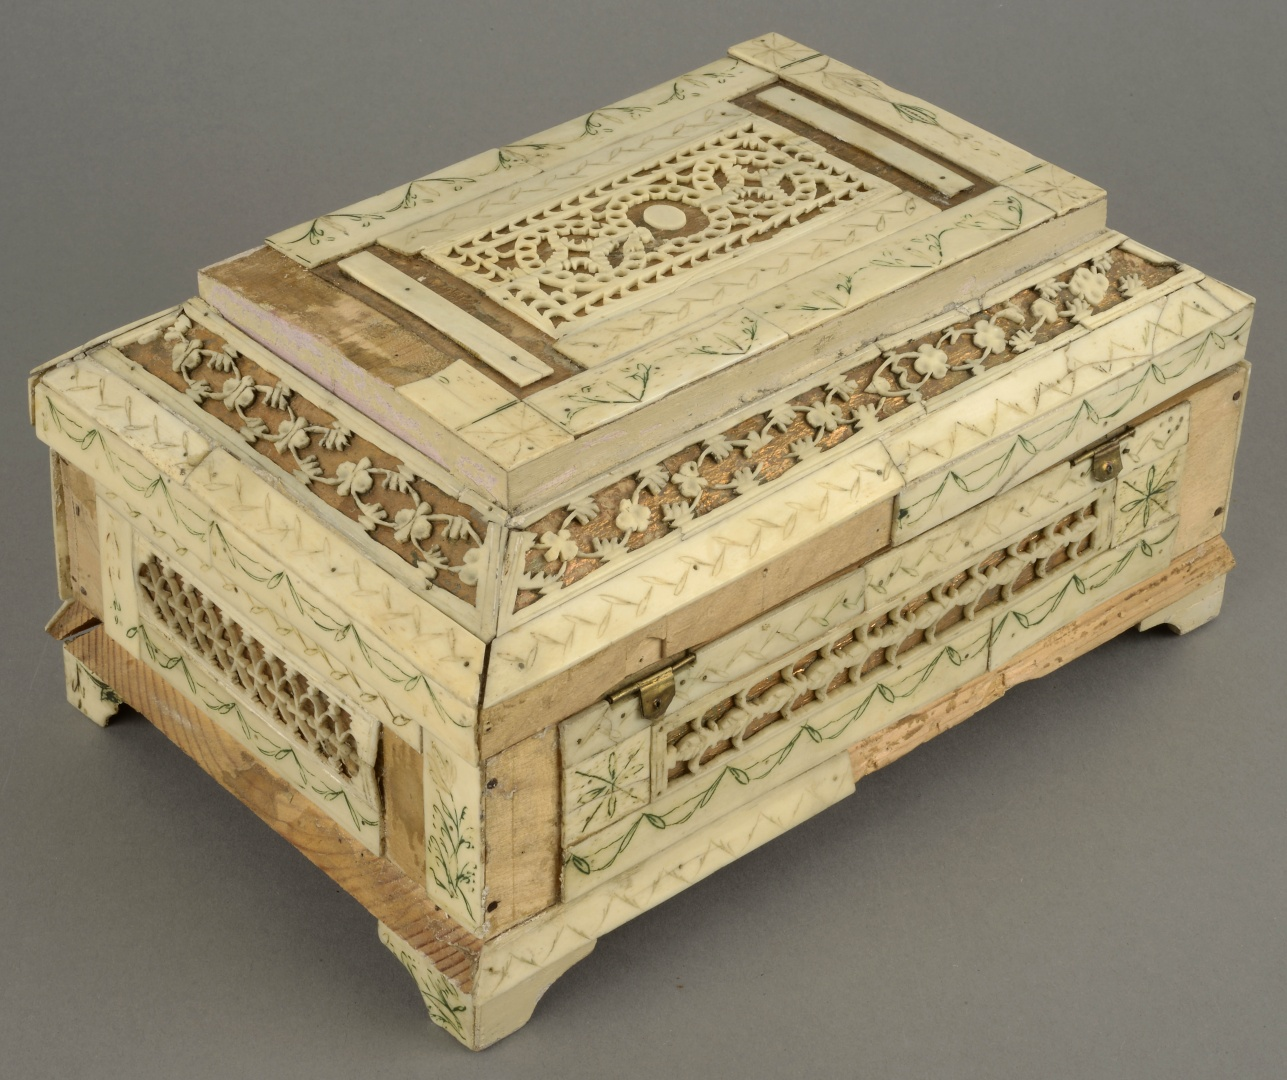 fig 5. The casket (in the article) with gold foil before conservation. The back of the casket.  Some details were loose and some missing, the metal hinges were broken